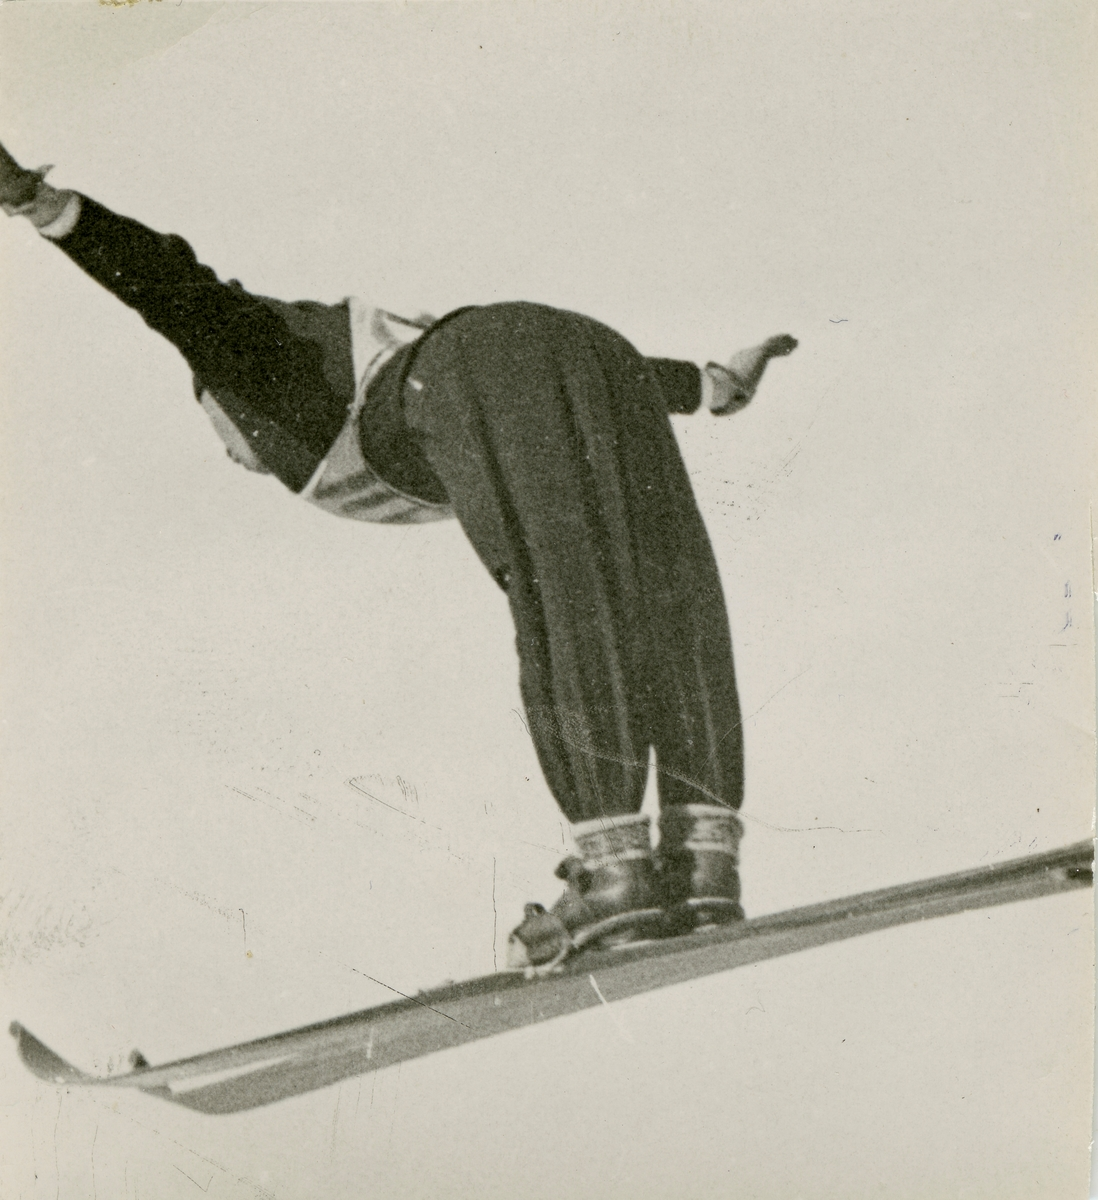 Ski athlete Birger Ruud at Holmenkollen